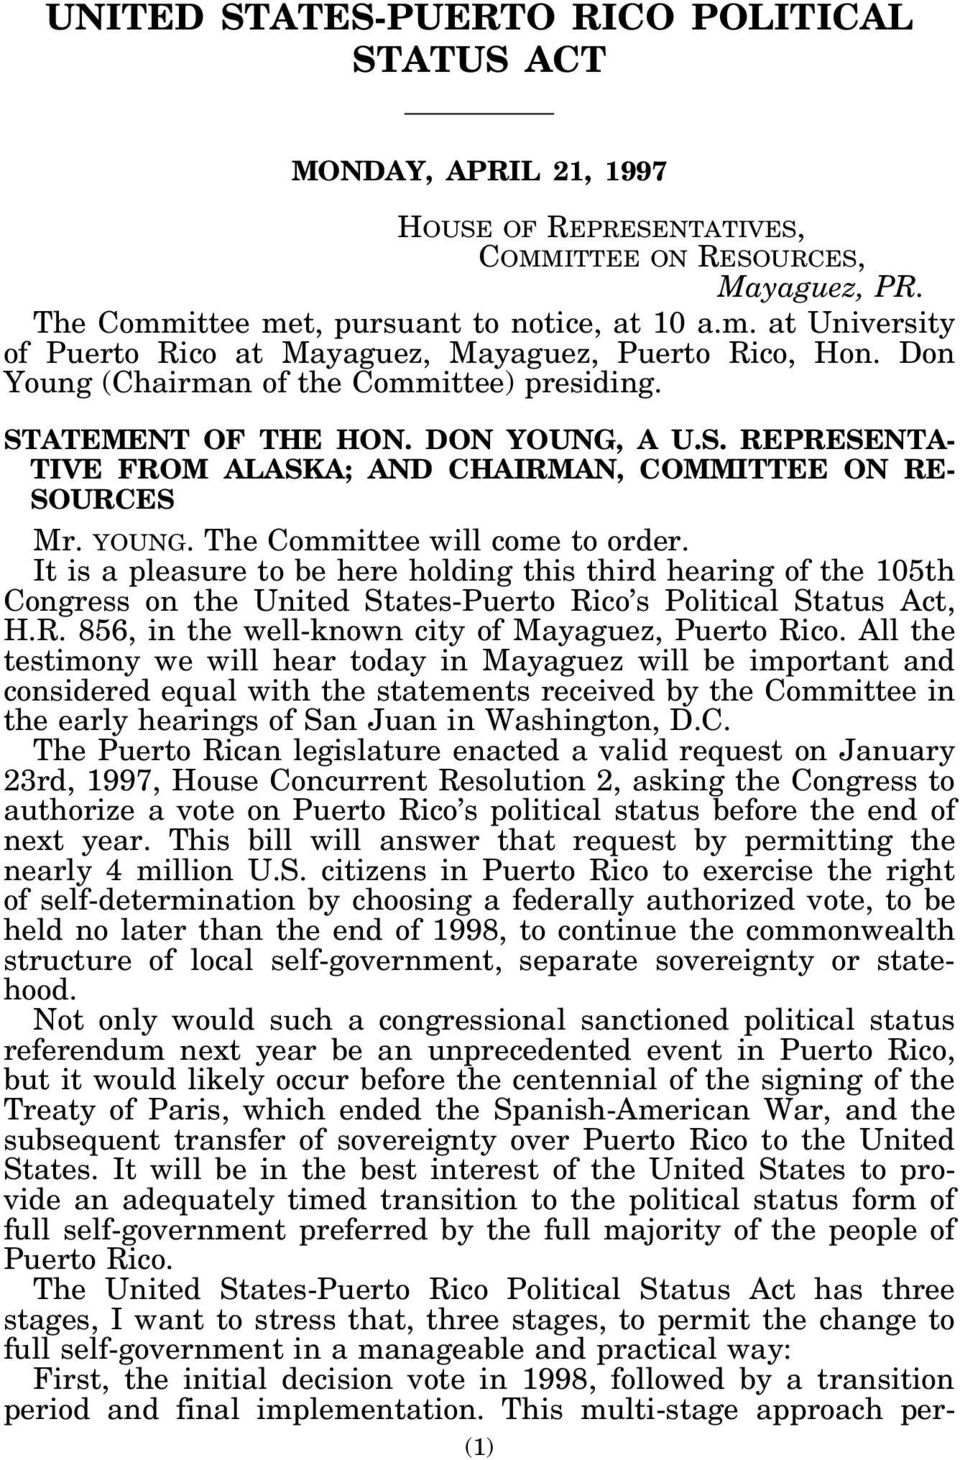 ATEMENT OF THE HON. DON YOUNG, A U.S. REPRESENTA- TIVE FROM ALASKA; AND CHAIRMAN, COMMITTEE ON RE- SOURCES Mr. YOUNG. The Committee will come to order.